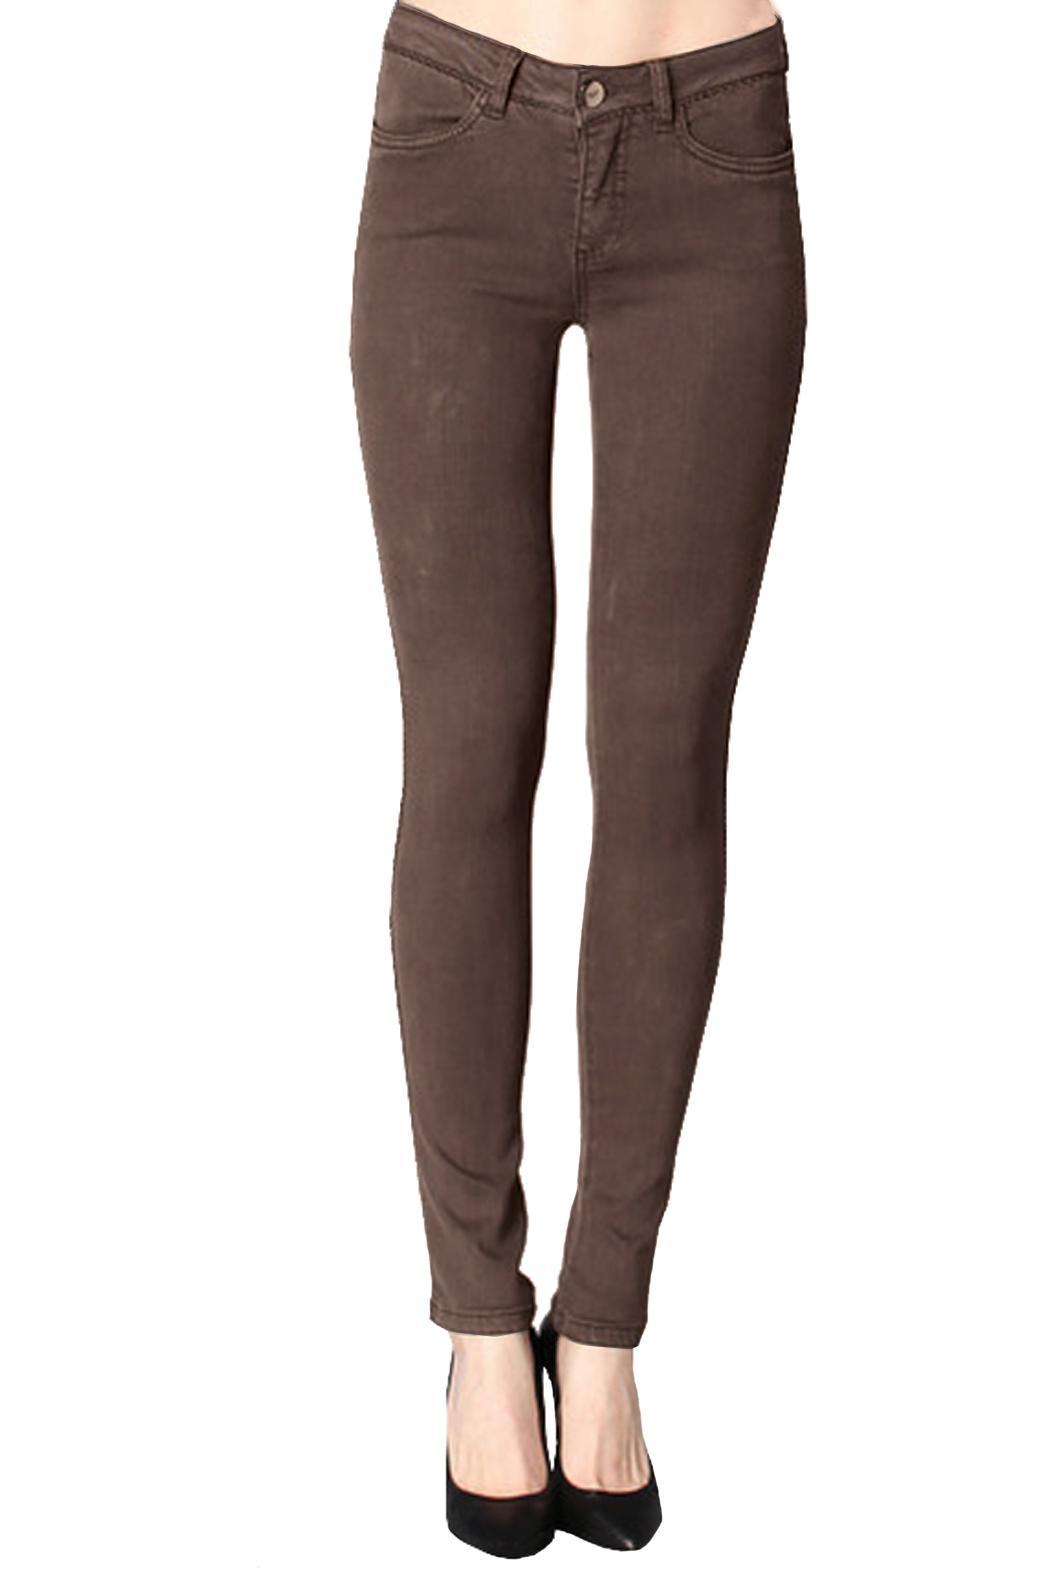 hotel particulier Slim Trousers - Main Image